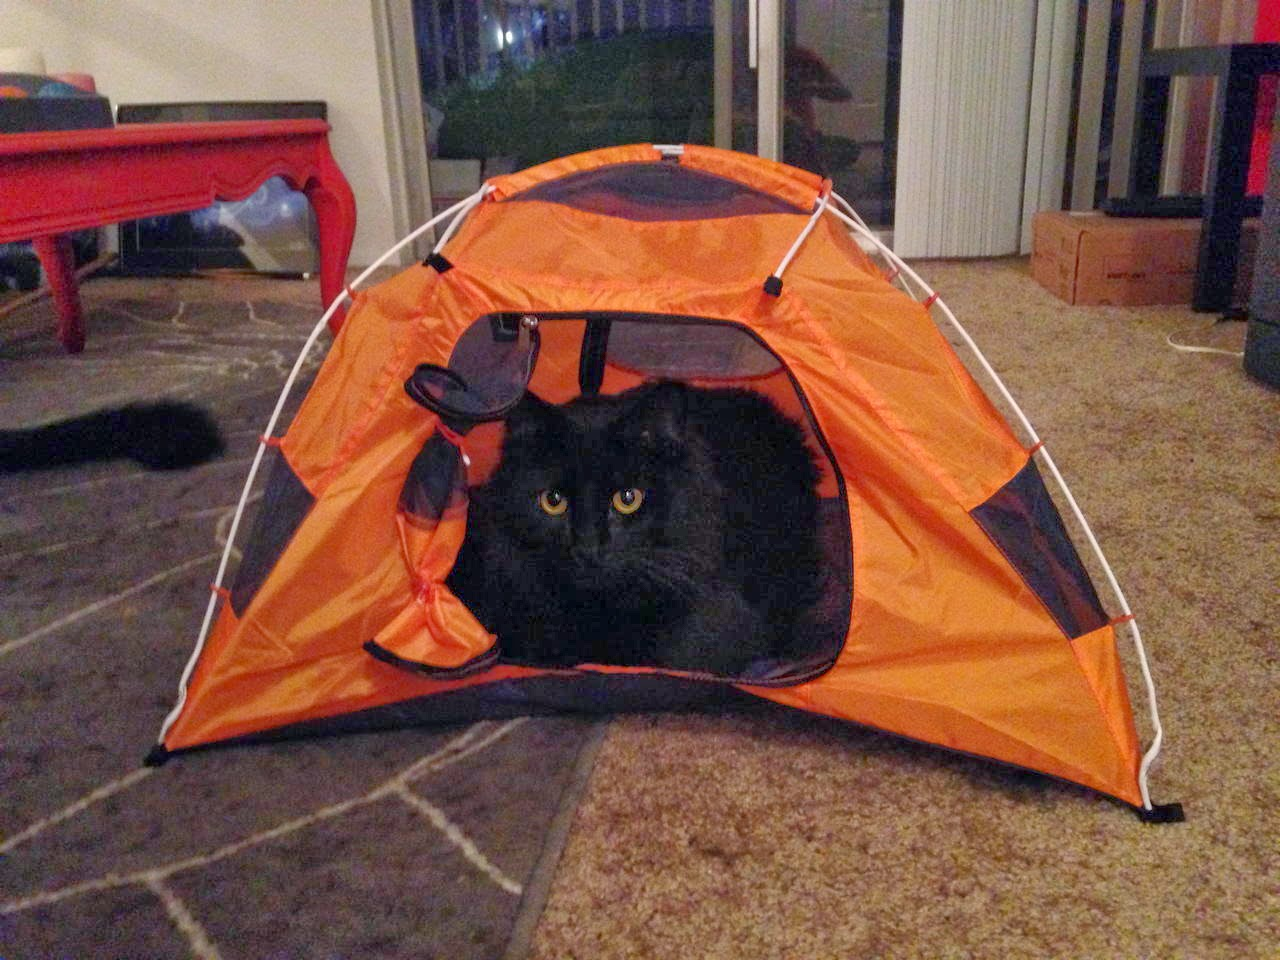 Funny cats - part 97 (40 pics + 10 gifs), cat pictures, cat sits in small tent